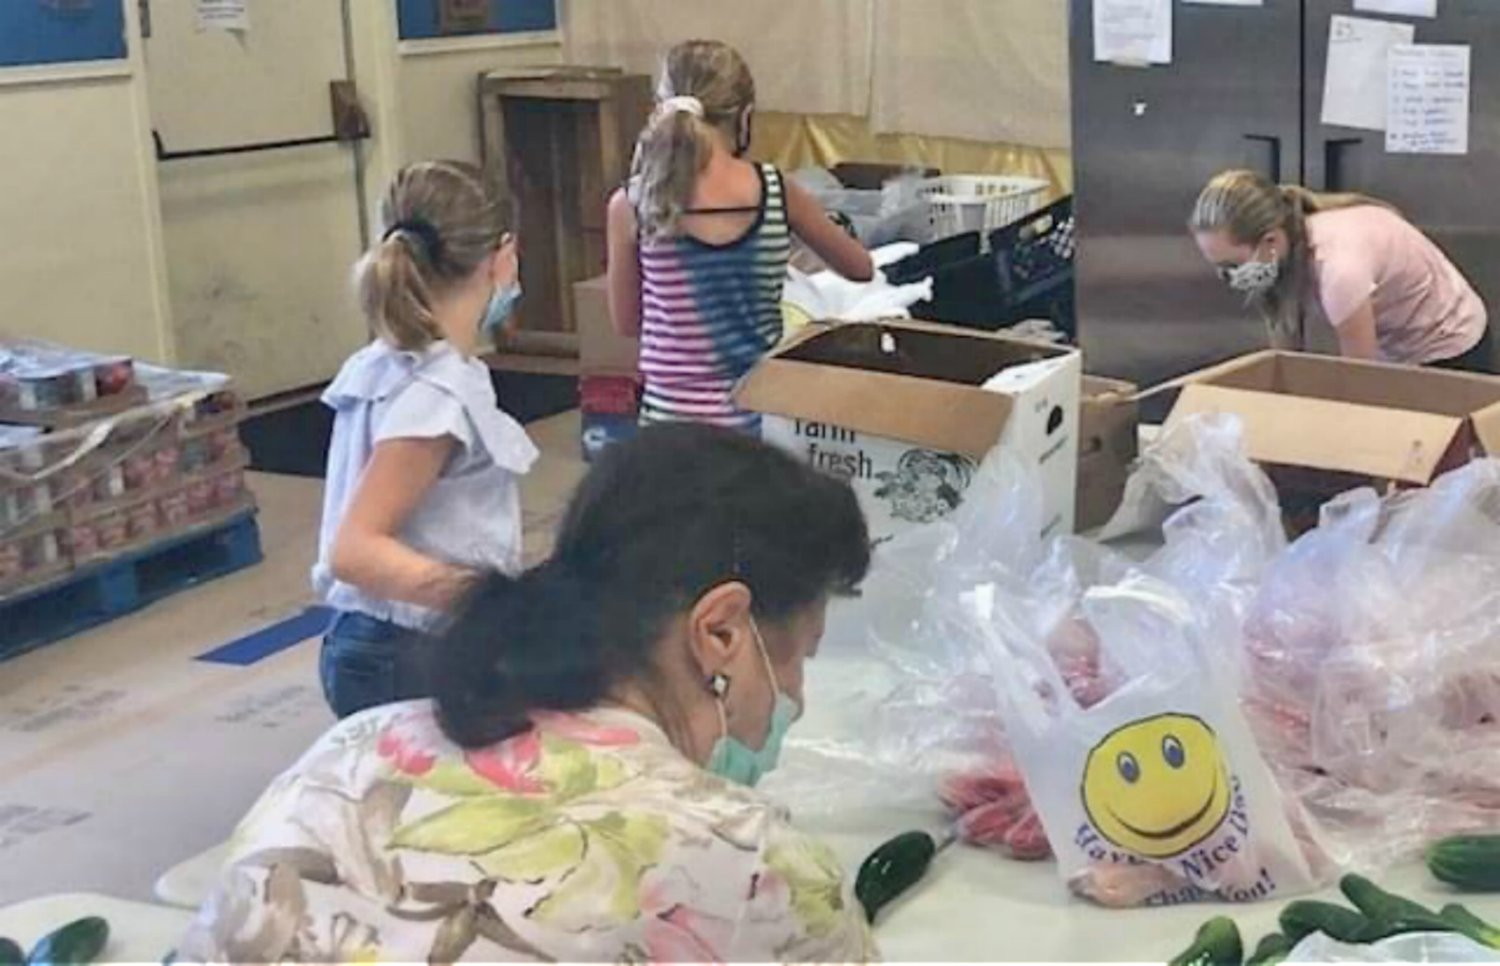 This past Labor Day, people of all ages volunteered at St. Rocco to help NOSH.